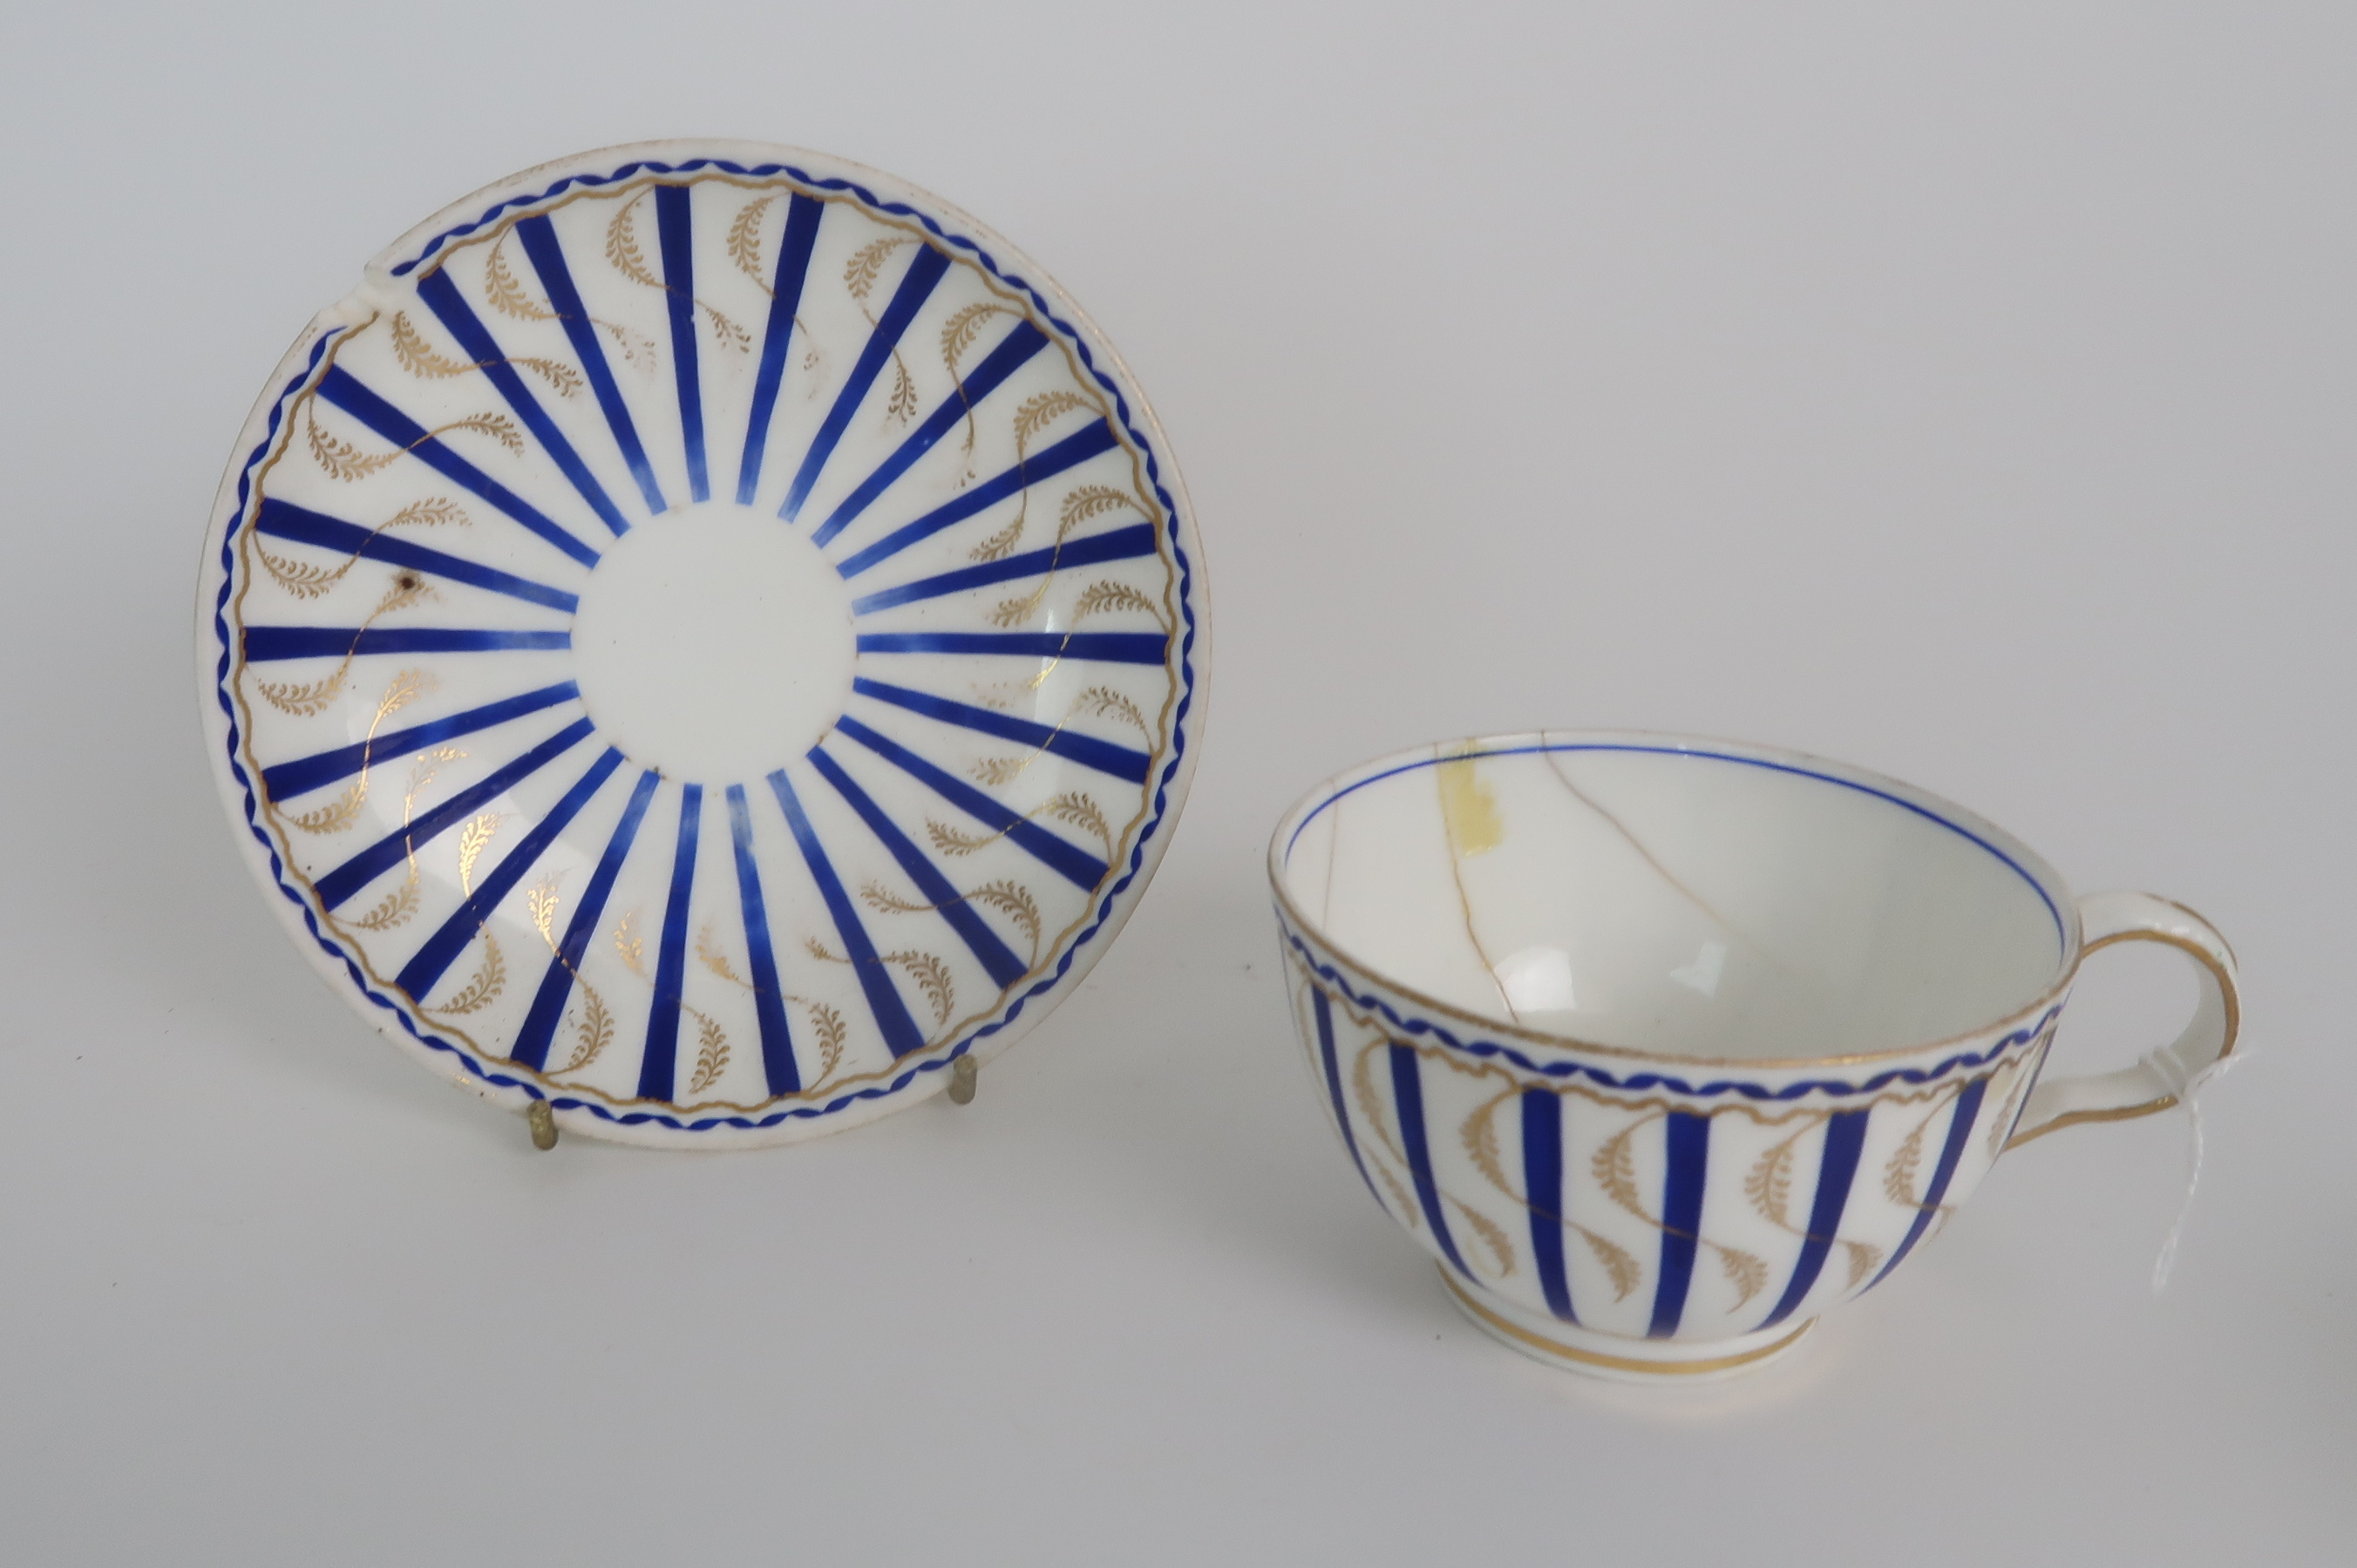 A COLLECTION OF 19TH CENTURY ENGLISH BLUE AND GILT DECORATED TEA AND COFFEE WARES including a - Image 22 of 23